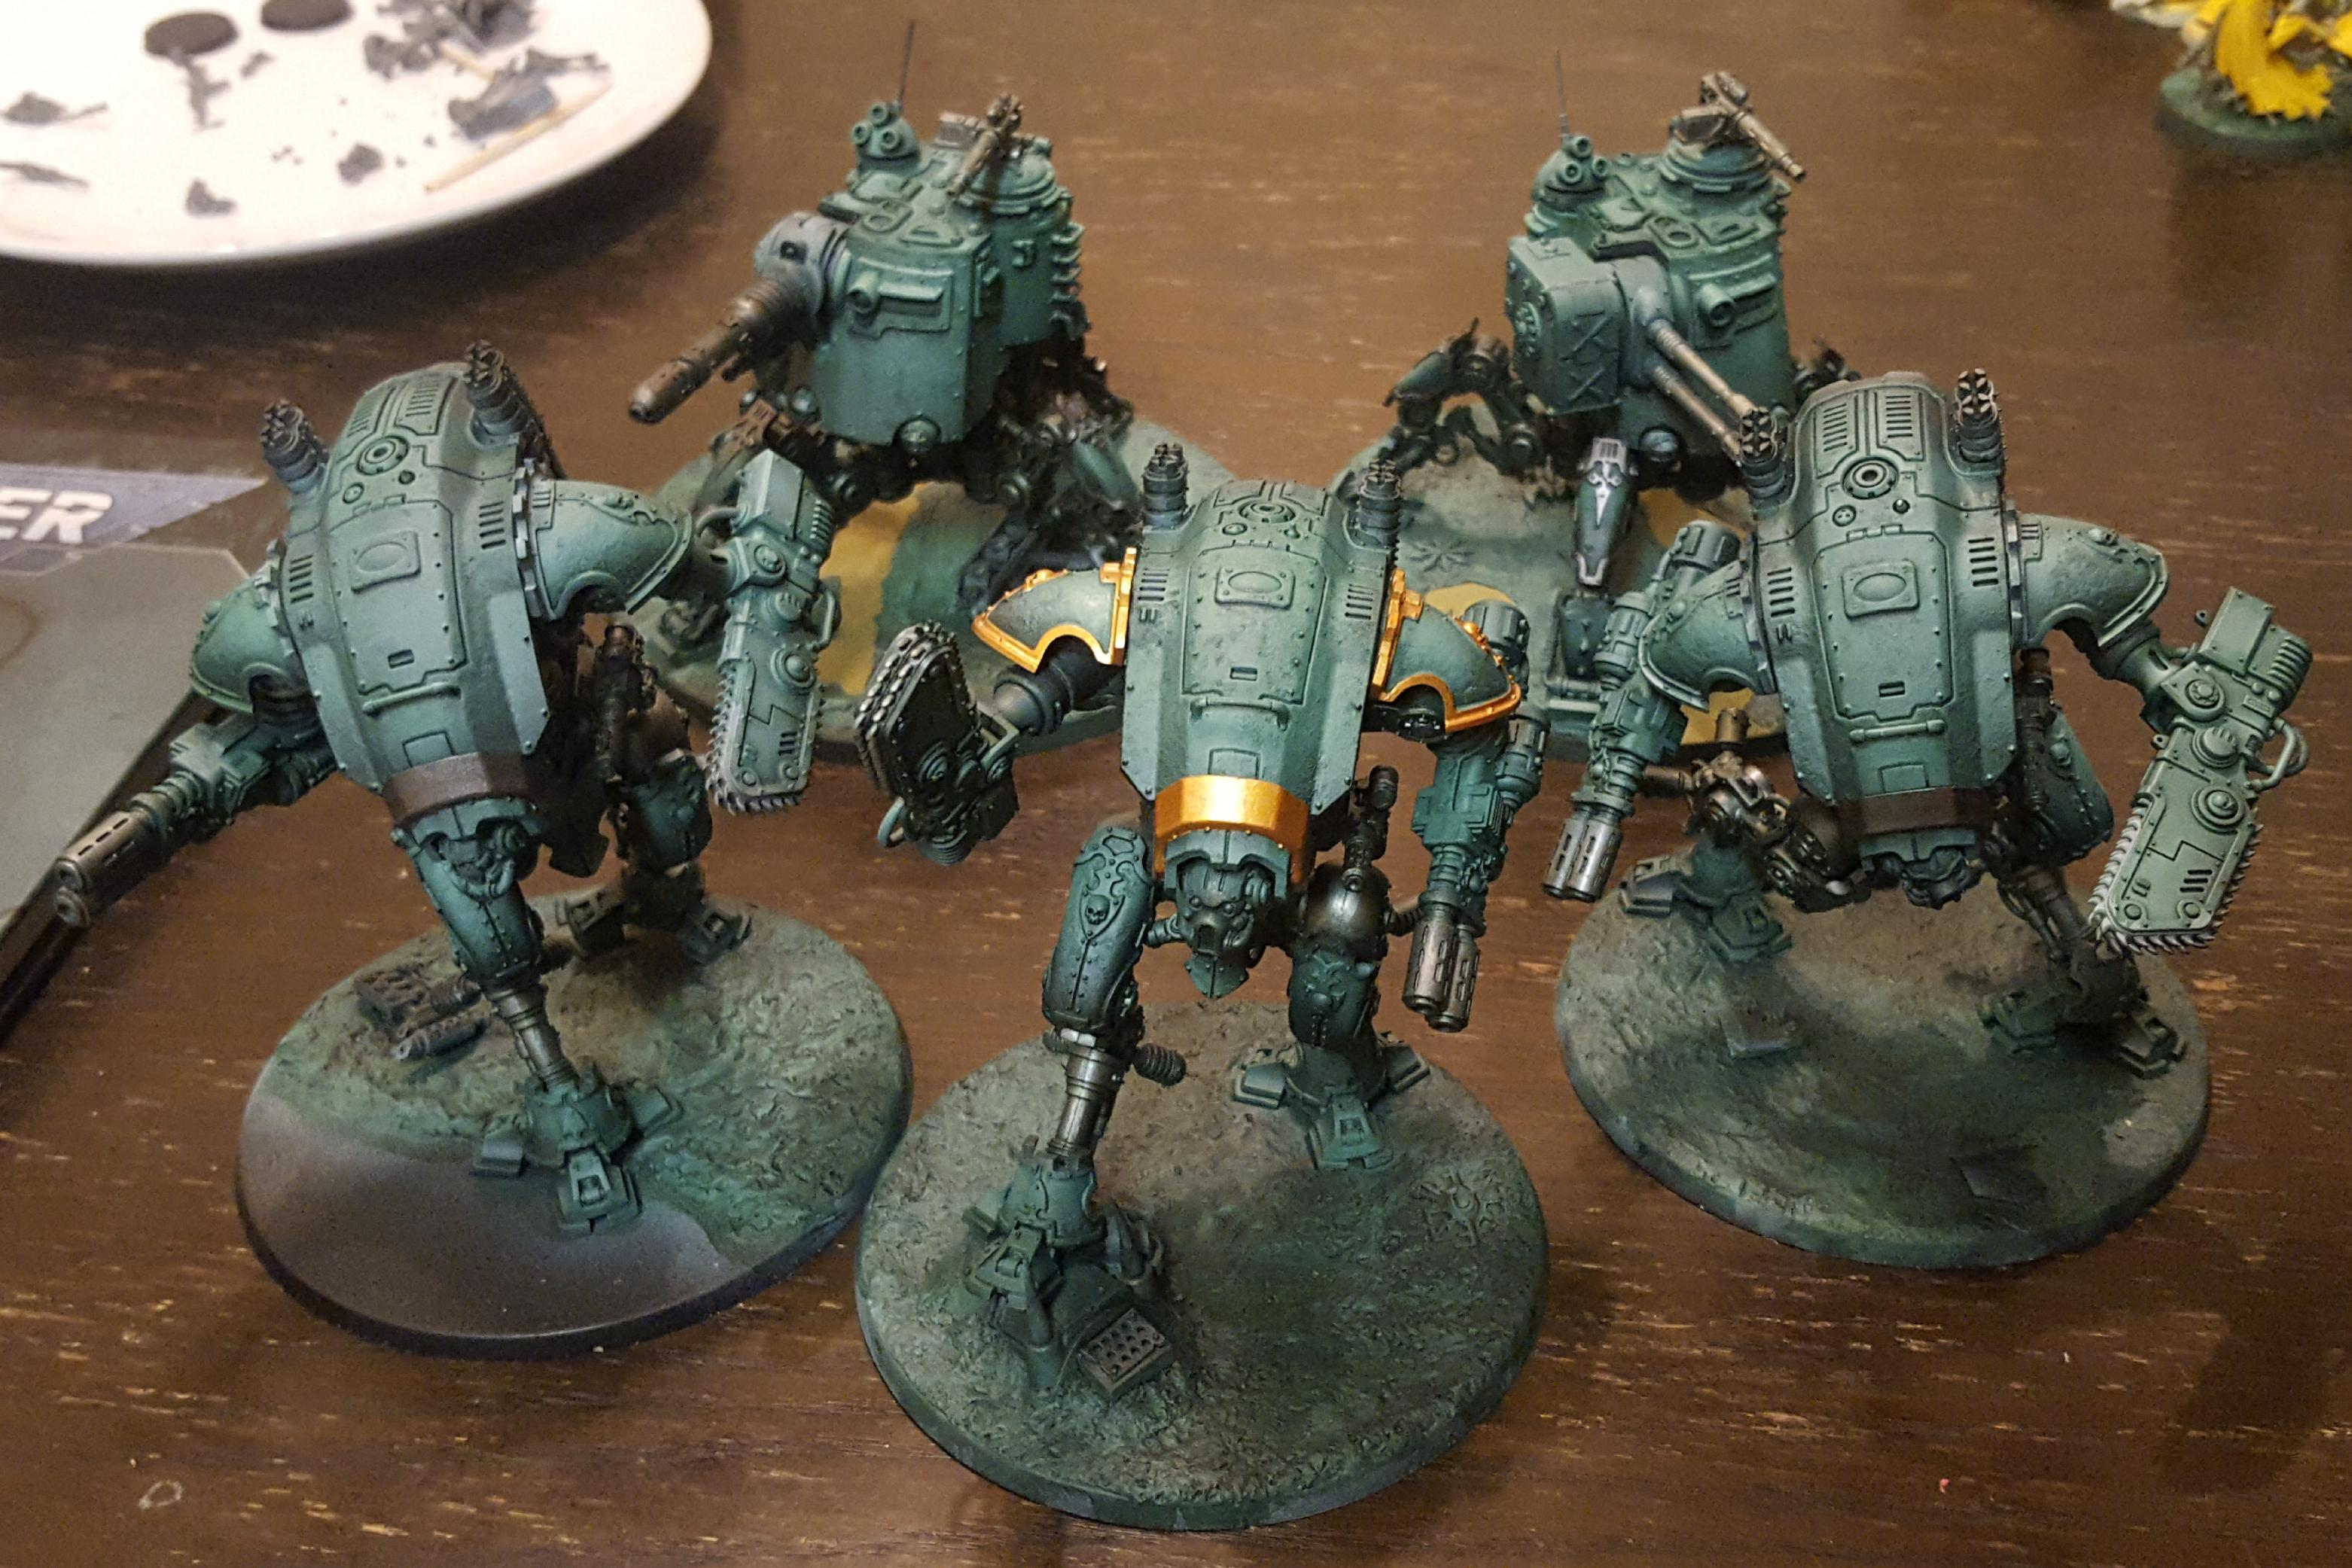 Armiger, Battle Ready, Cool, Crusade, Dynamic, Imperial Knight, Pose, Warglaive